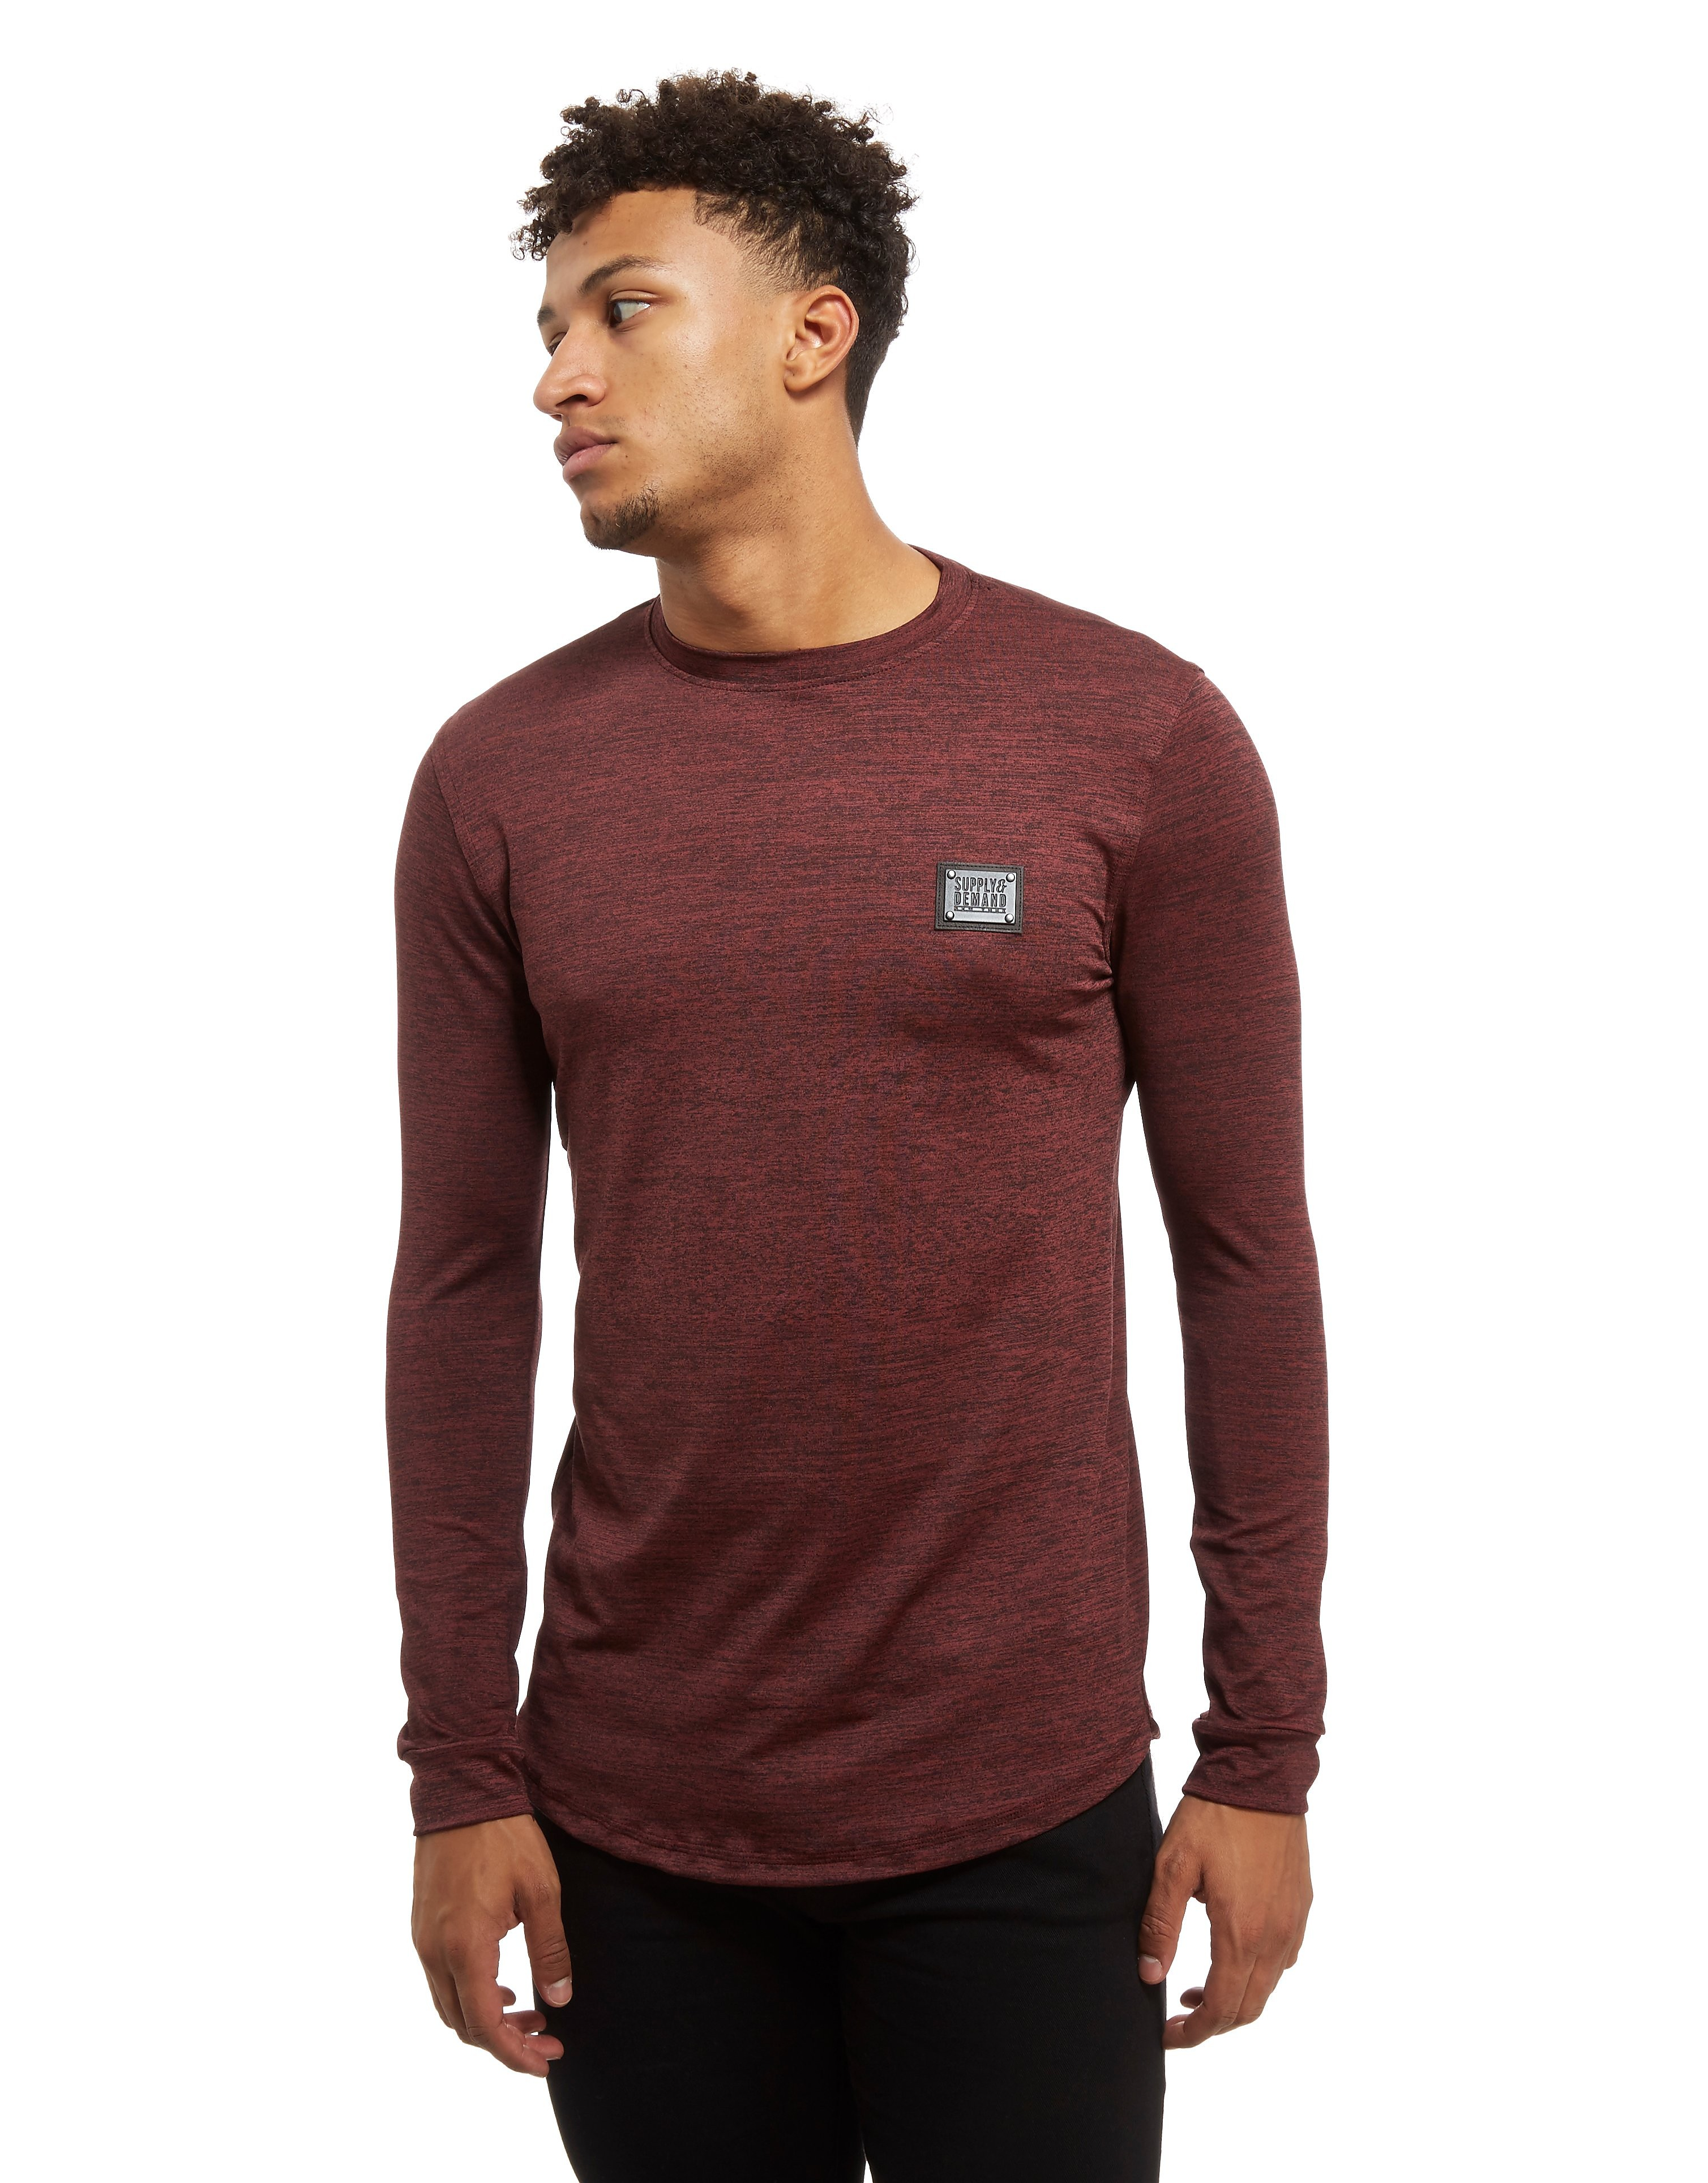 Supply & Demand Truffle Hendrick Long Sleeve T-Shirt